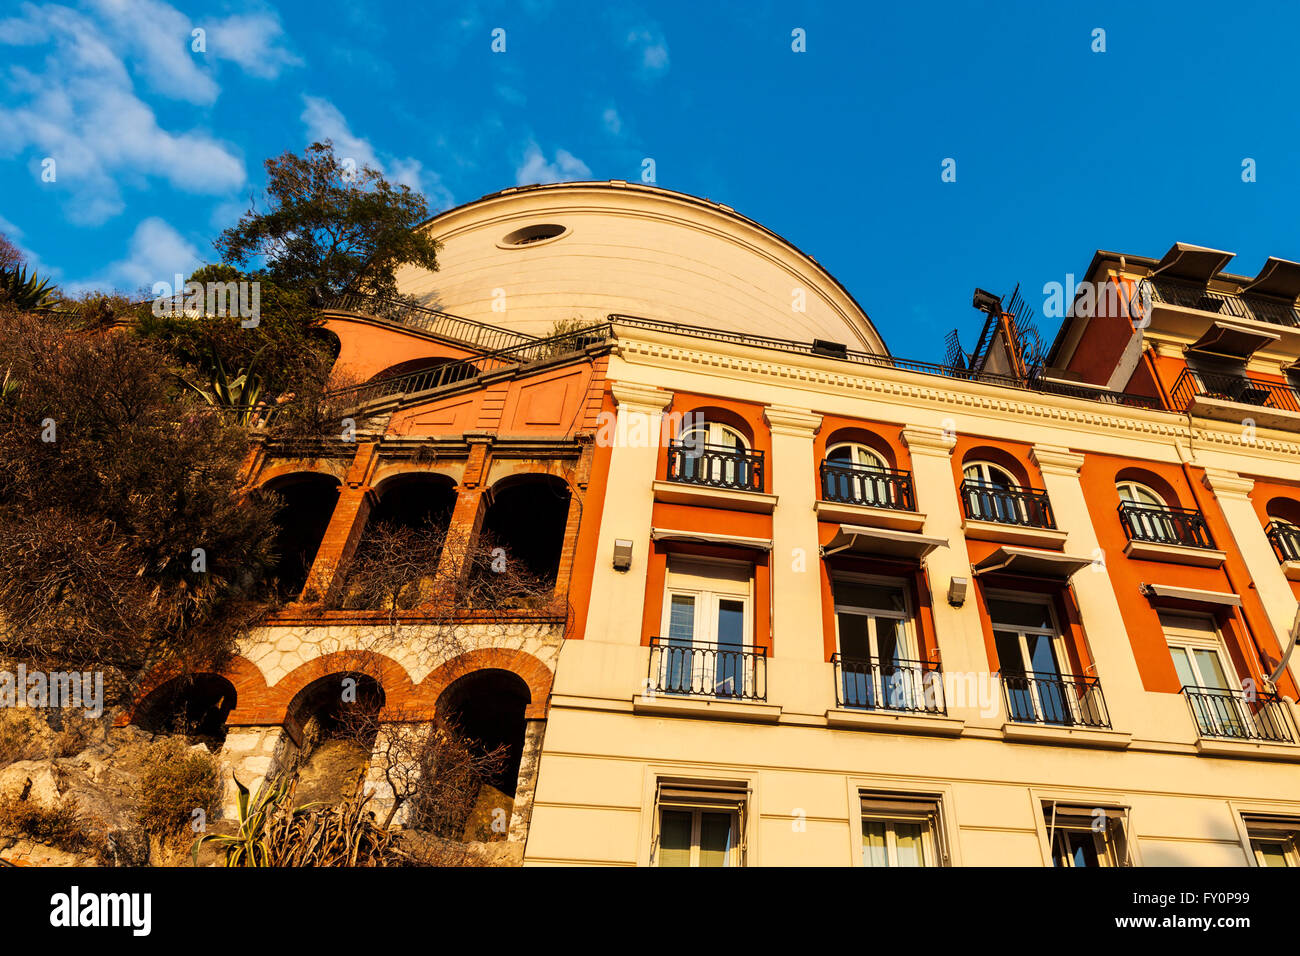 Viewpoint in Nice - Old Town of th city - Stock Image